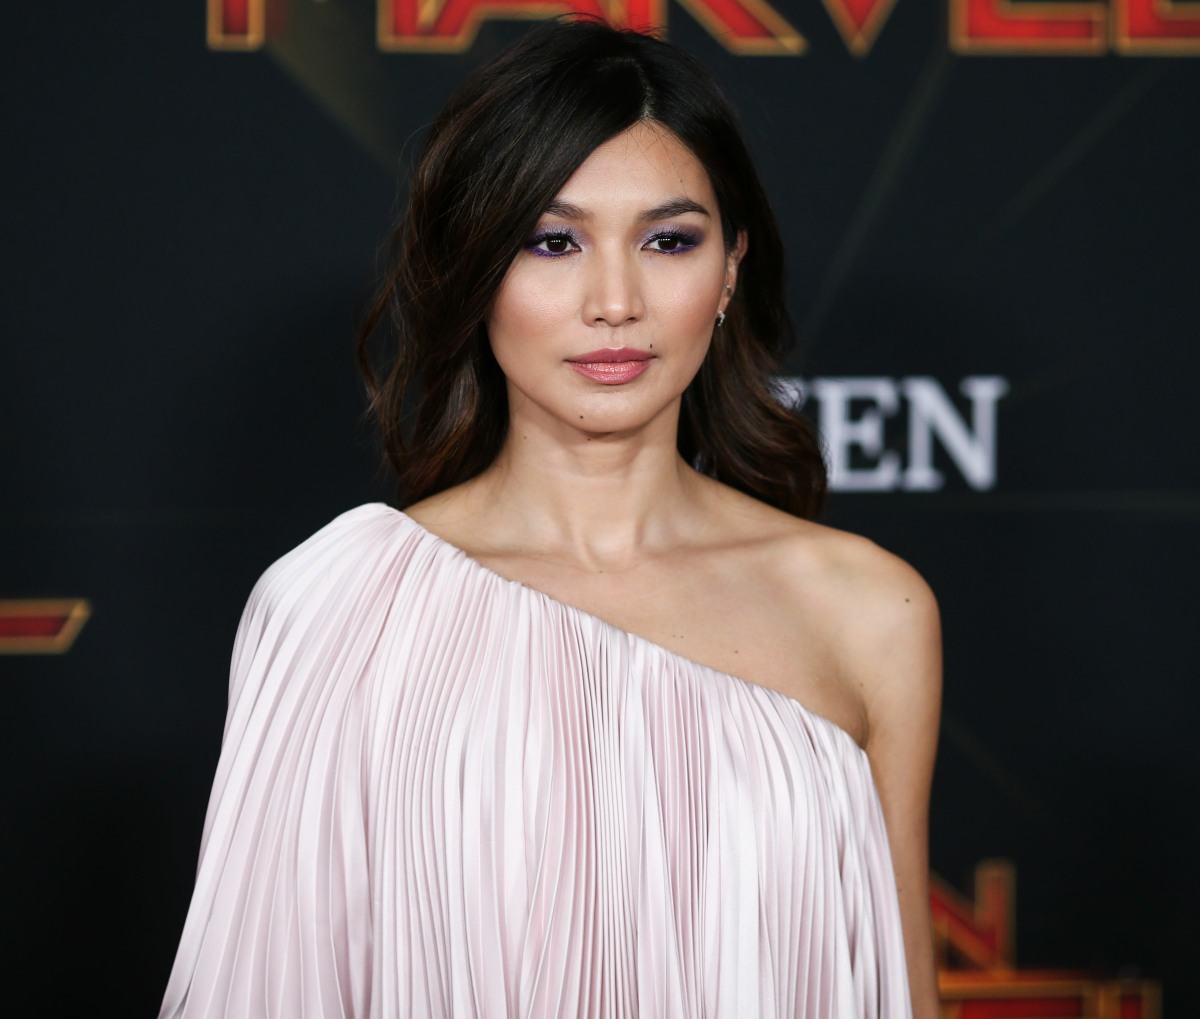 Actress Gemma Chan arrives at the World Premiere Of Marvel Studios 'Captain Marvel' held at the El Capitan Theatre on March 4, 2019 in Hollywood, Los Angeles, California, United States. (Photo by Xavier Collin/Image Press Agency)